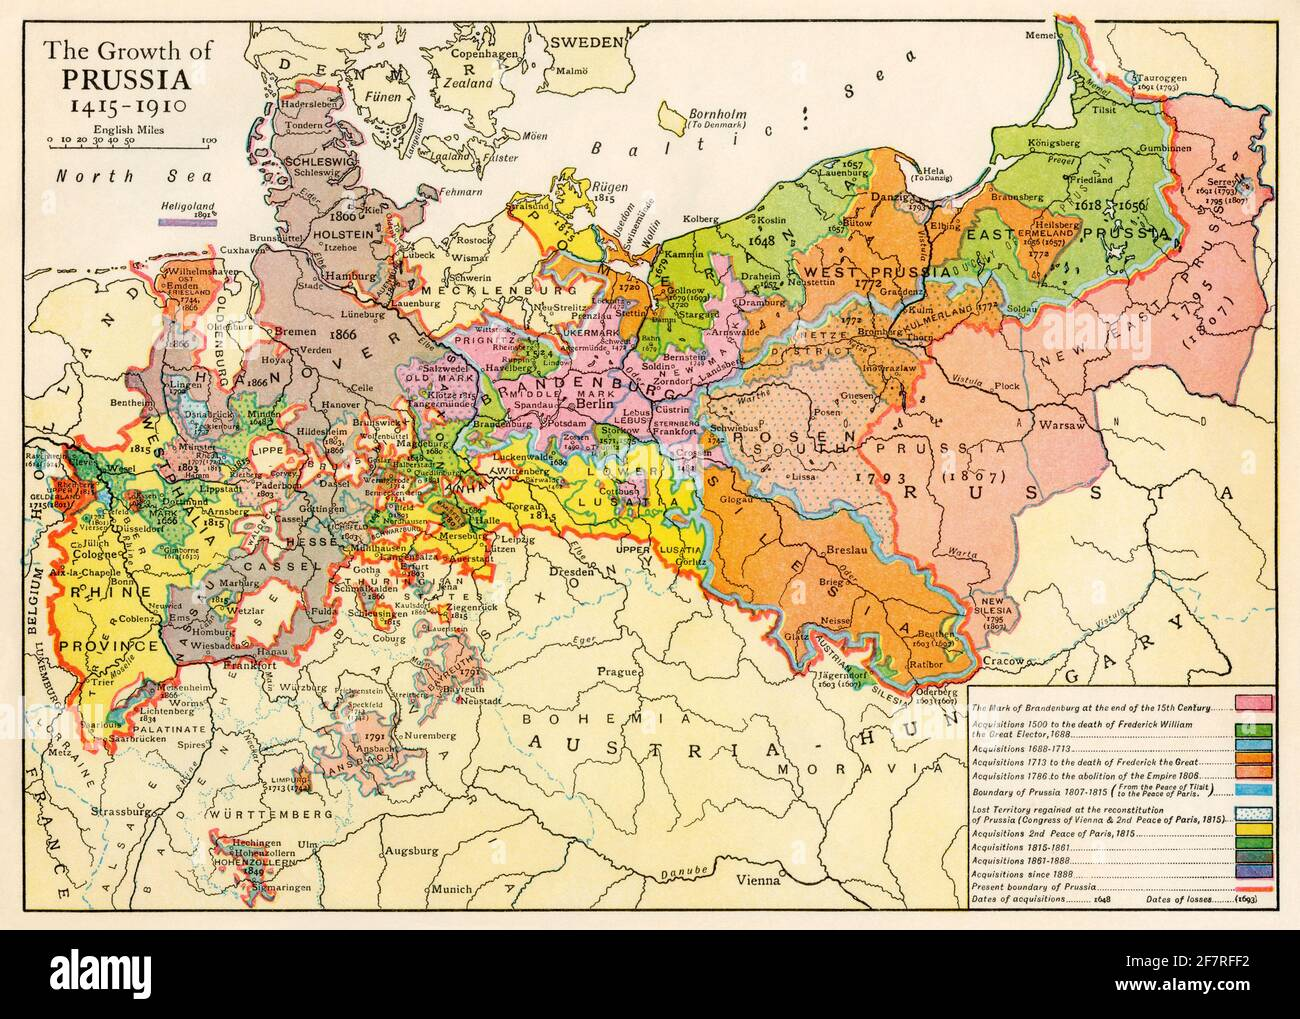 Growth of Prussia, 1415-1910. Color halftone Stock Photo